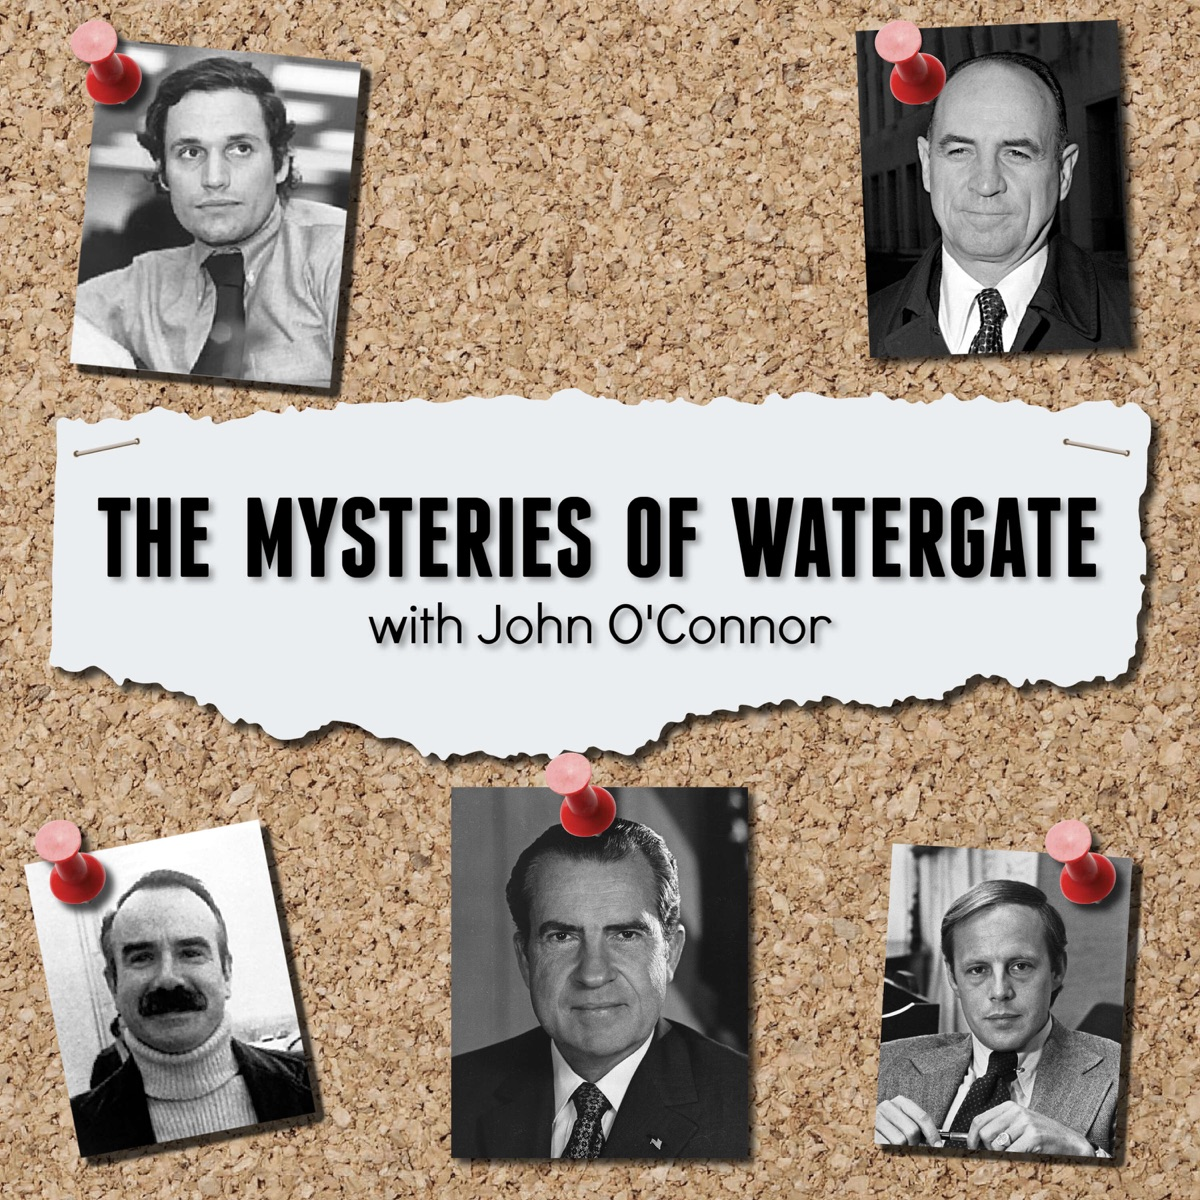 The Mysteries of Watergate